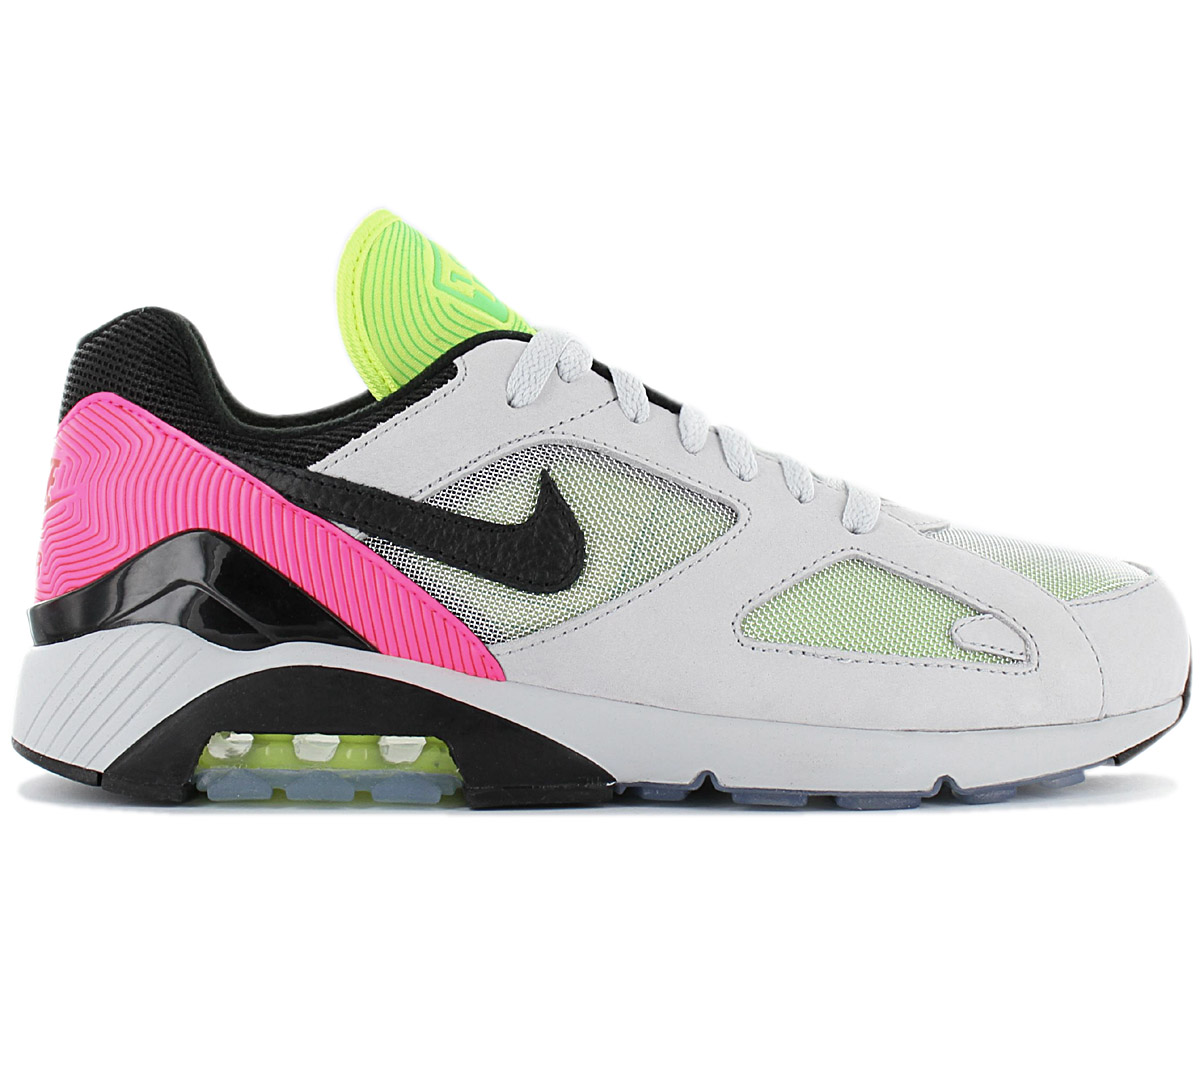 Details about Nike air max 180 Berlin Freedom Men's Sneaker BV7487 001 Shoes Sneakers New